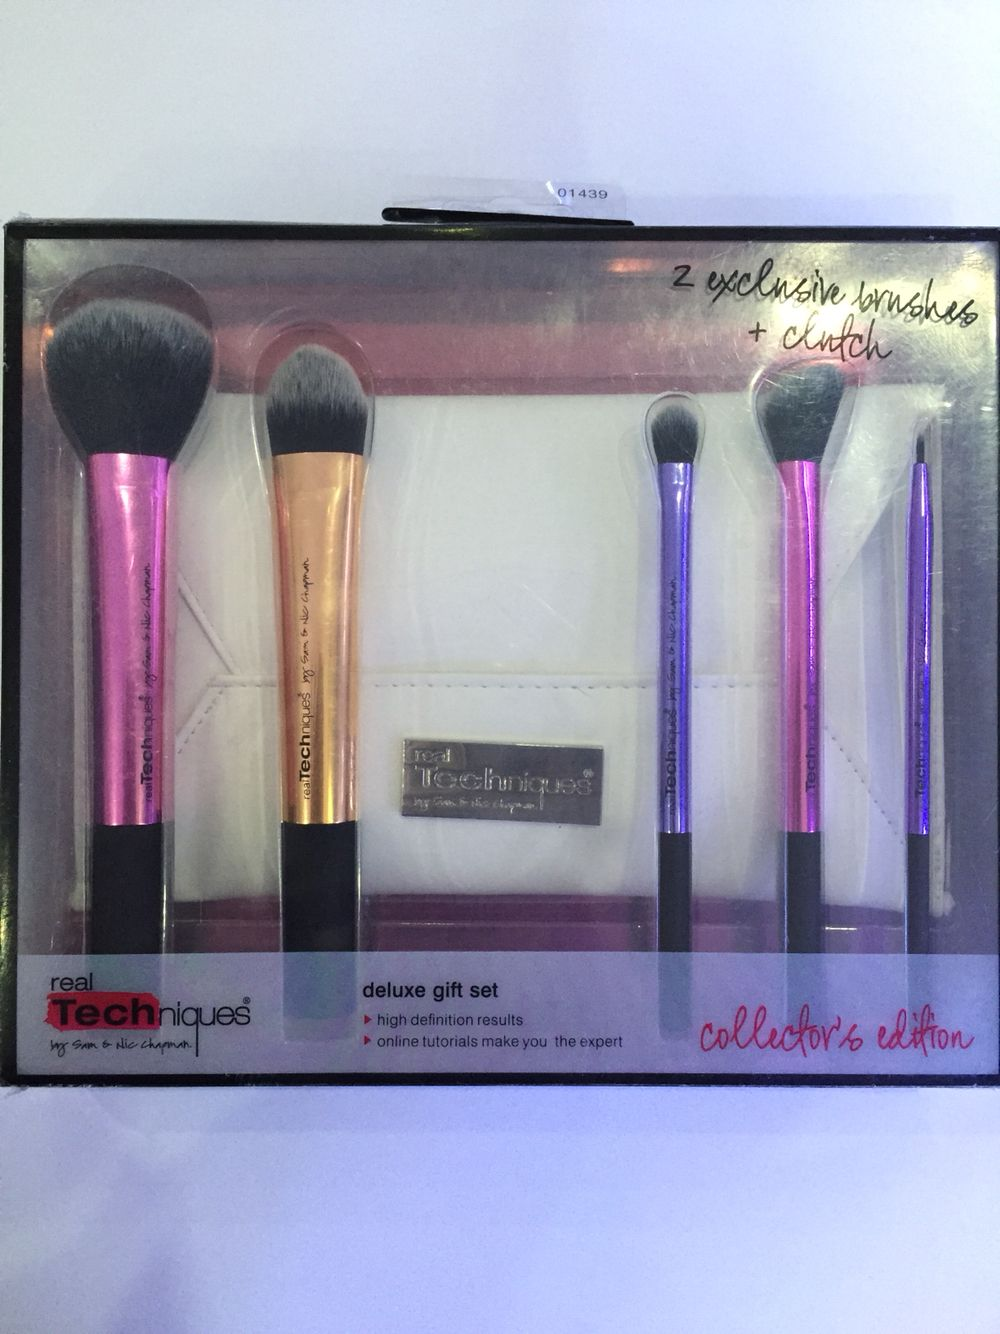 Real Techniques brush set Product from Thailand Price 23